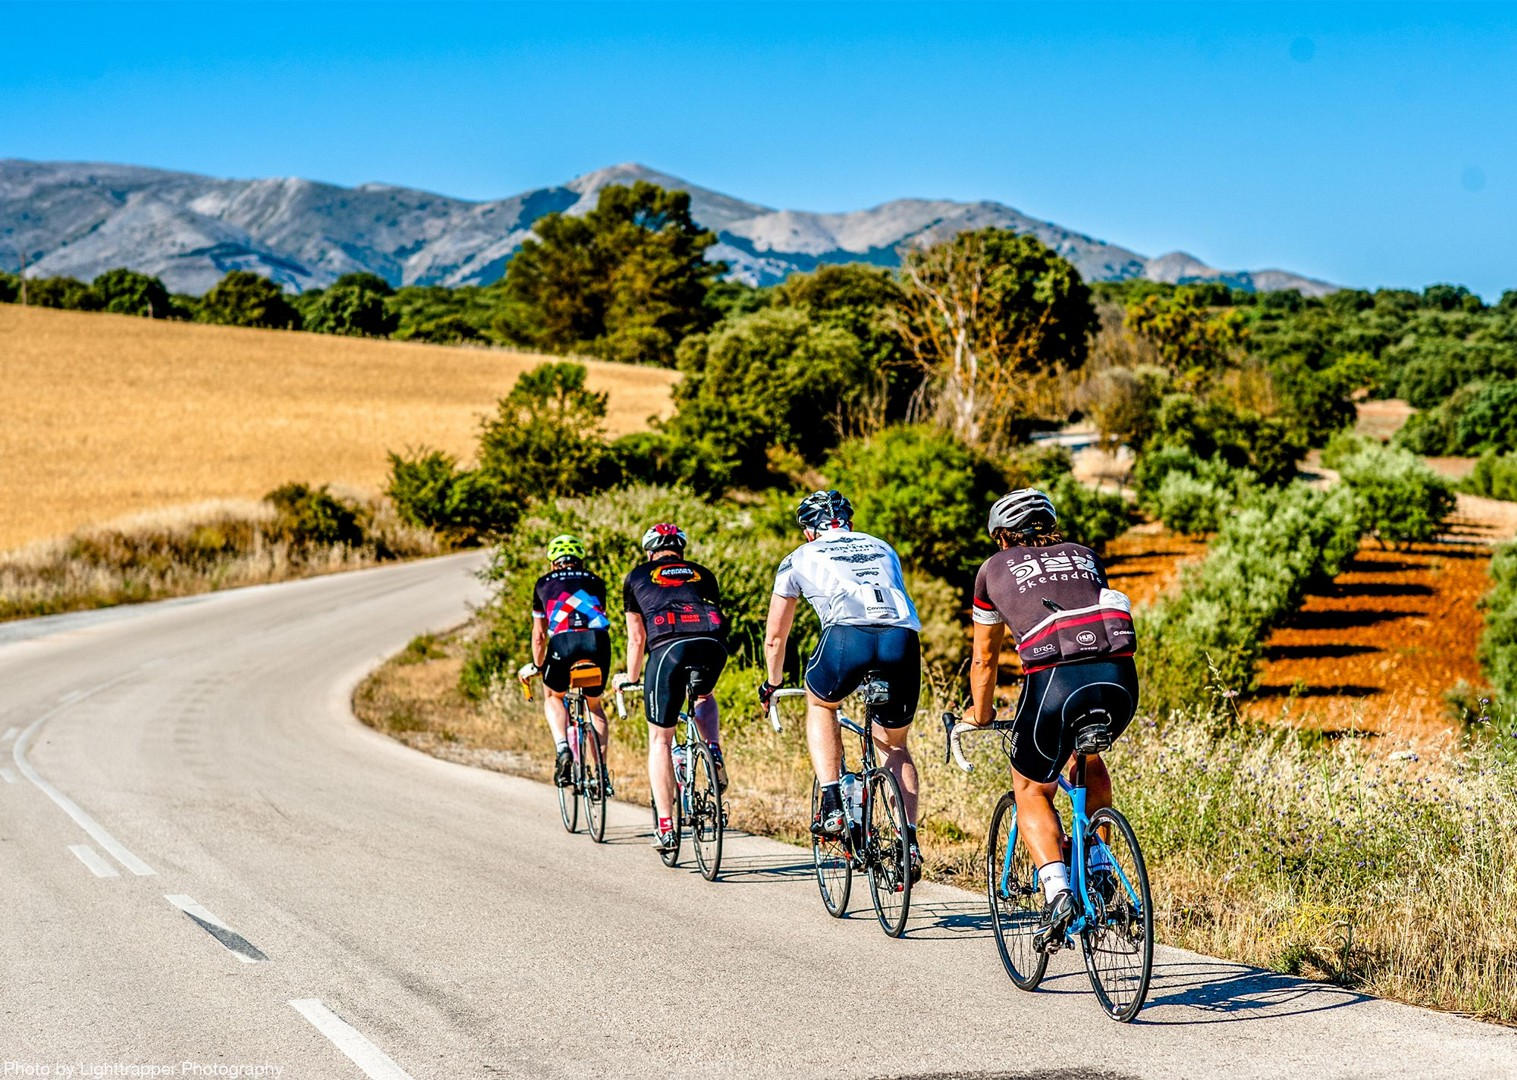 basque-country-to-andalucia-16-days-guided-road-cycling-holiday.jpg - Spain - Basque Country to Andalucia - North to South (16 Days) - Guided Road Cycling Holiday - Road Cycling